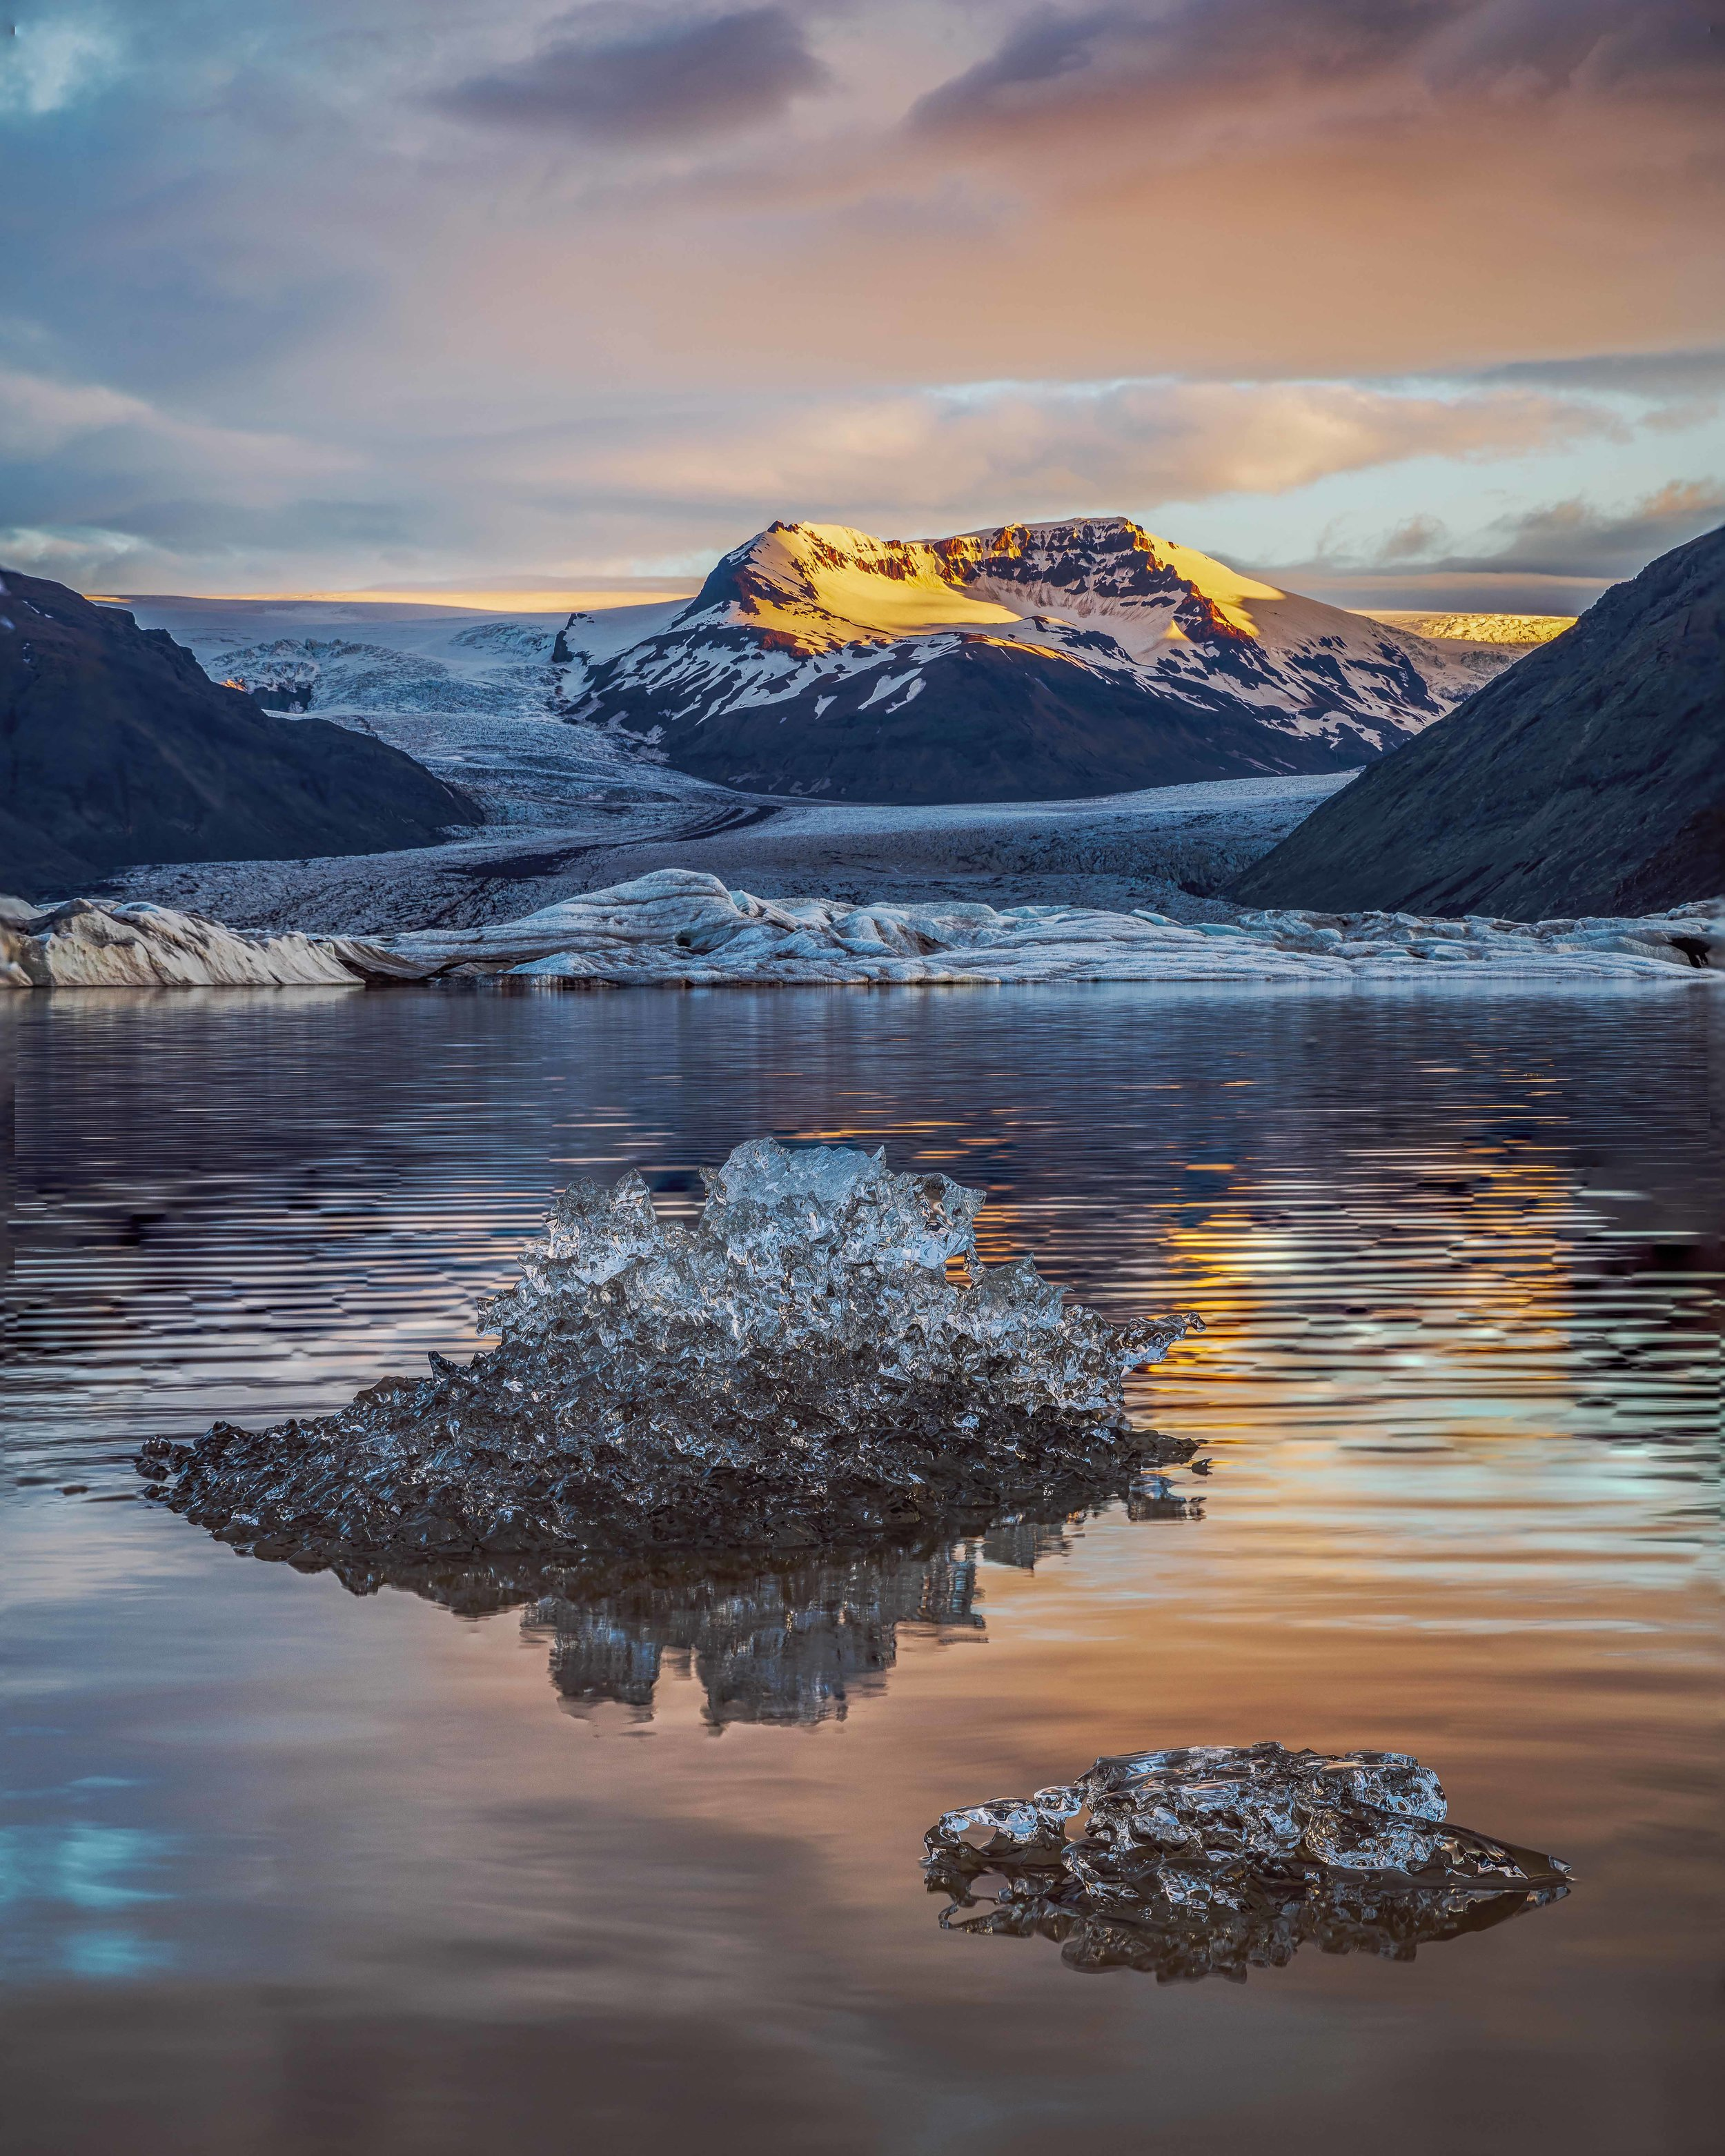 Glacial lagoon shortly after sunrise